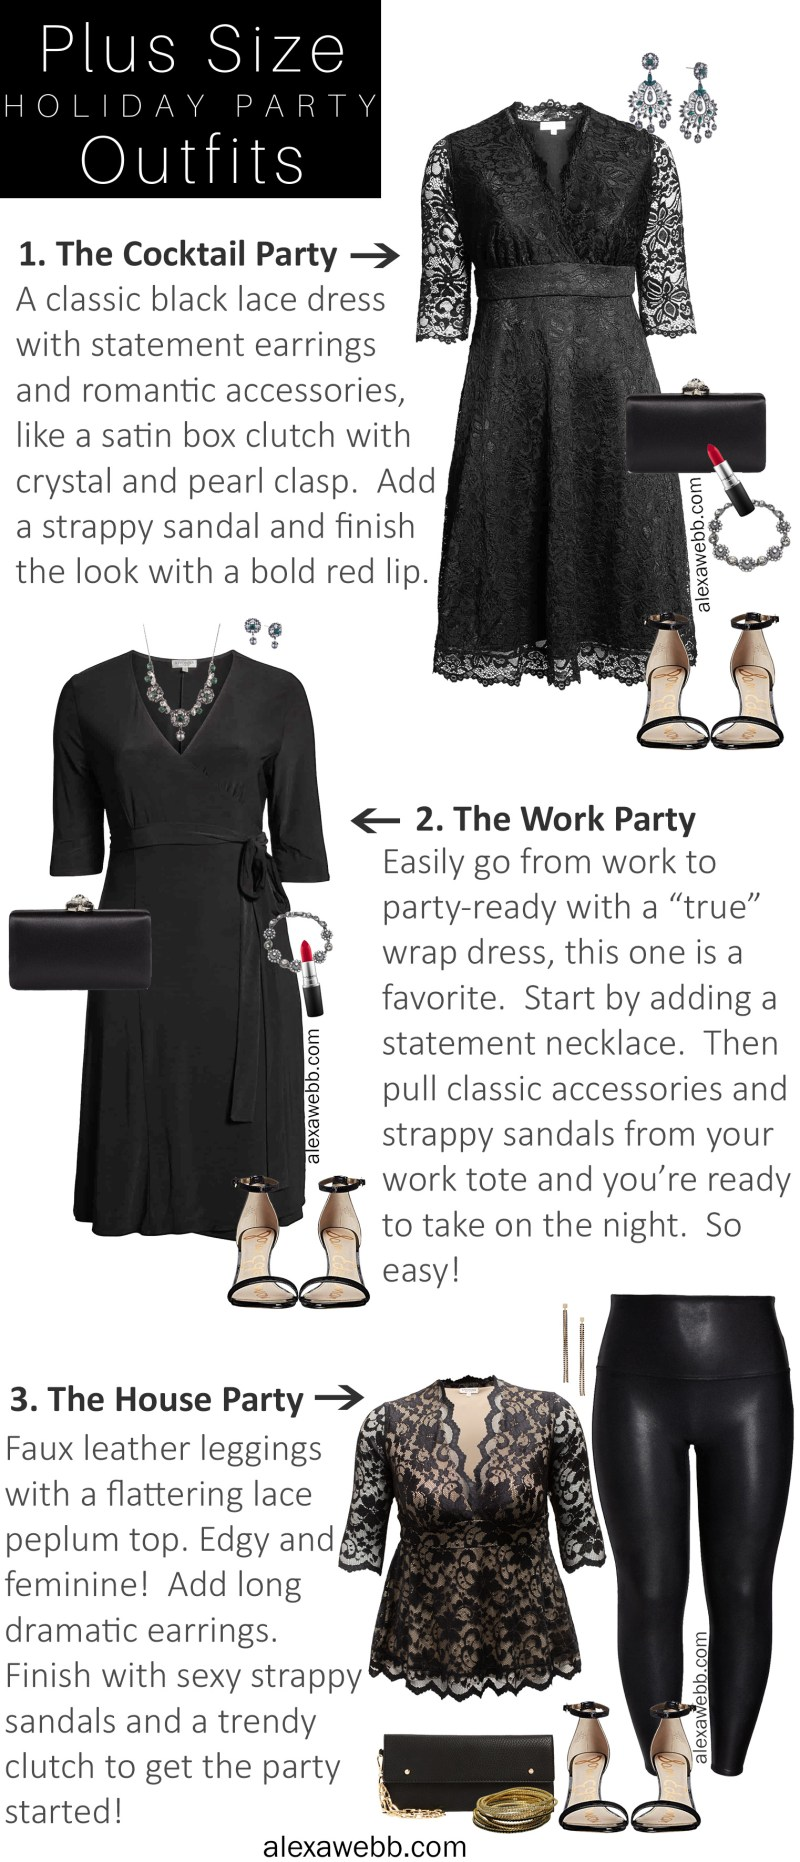 Plus Size Holiday Party Outfits with Kiyonna - Plus Size Cocktail Dress and Wrap Dress - Alexa Webb